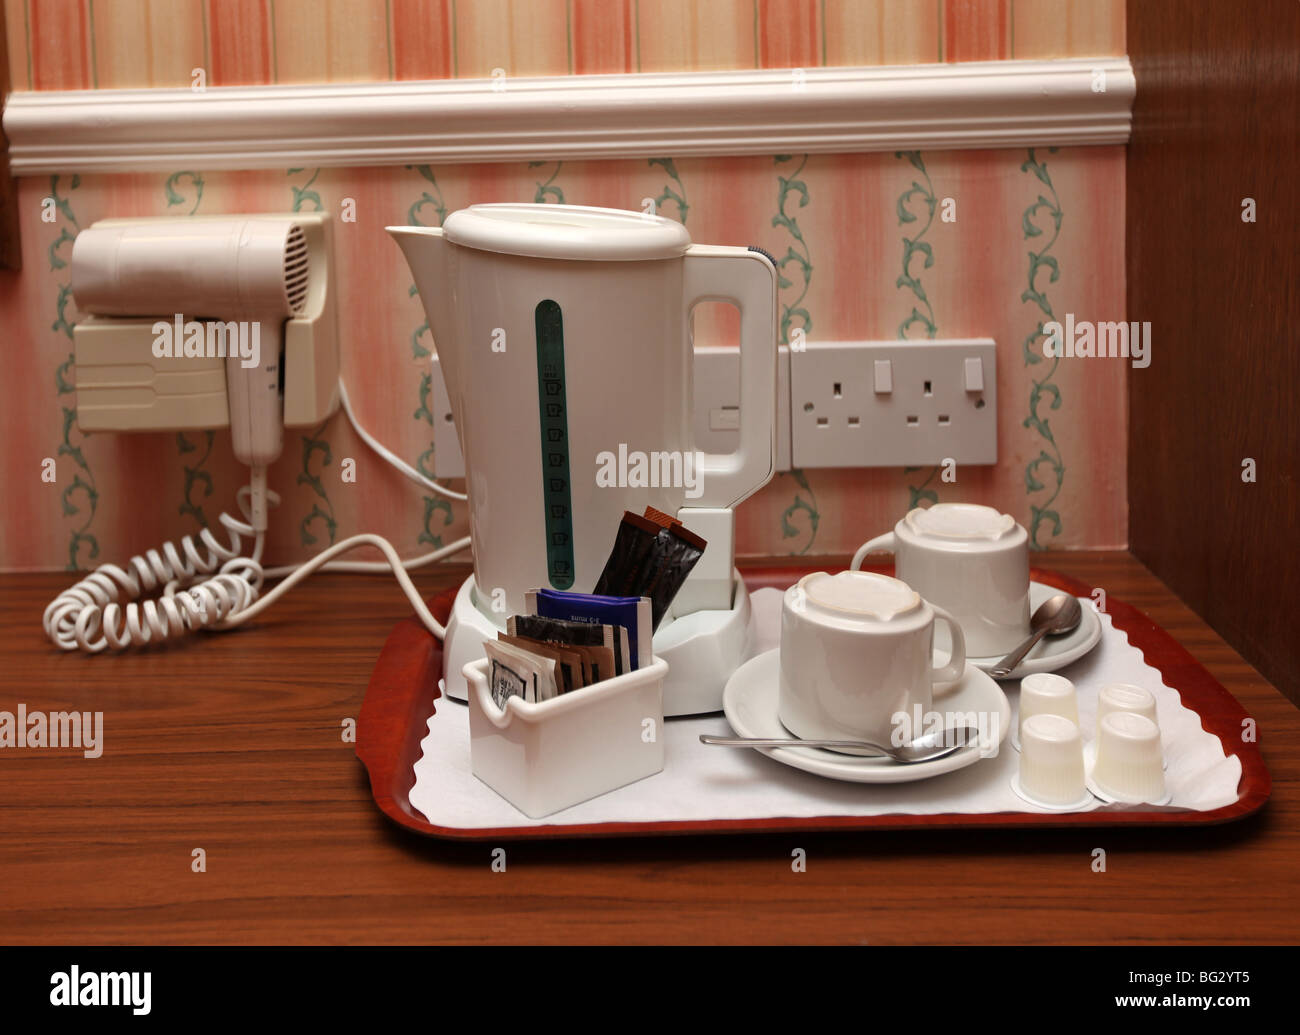 typical uk hotel bedroom accessory - a kettle with cup and saucers